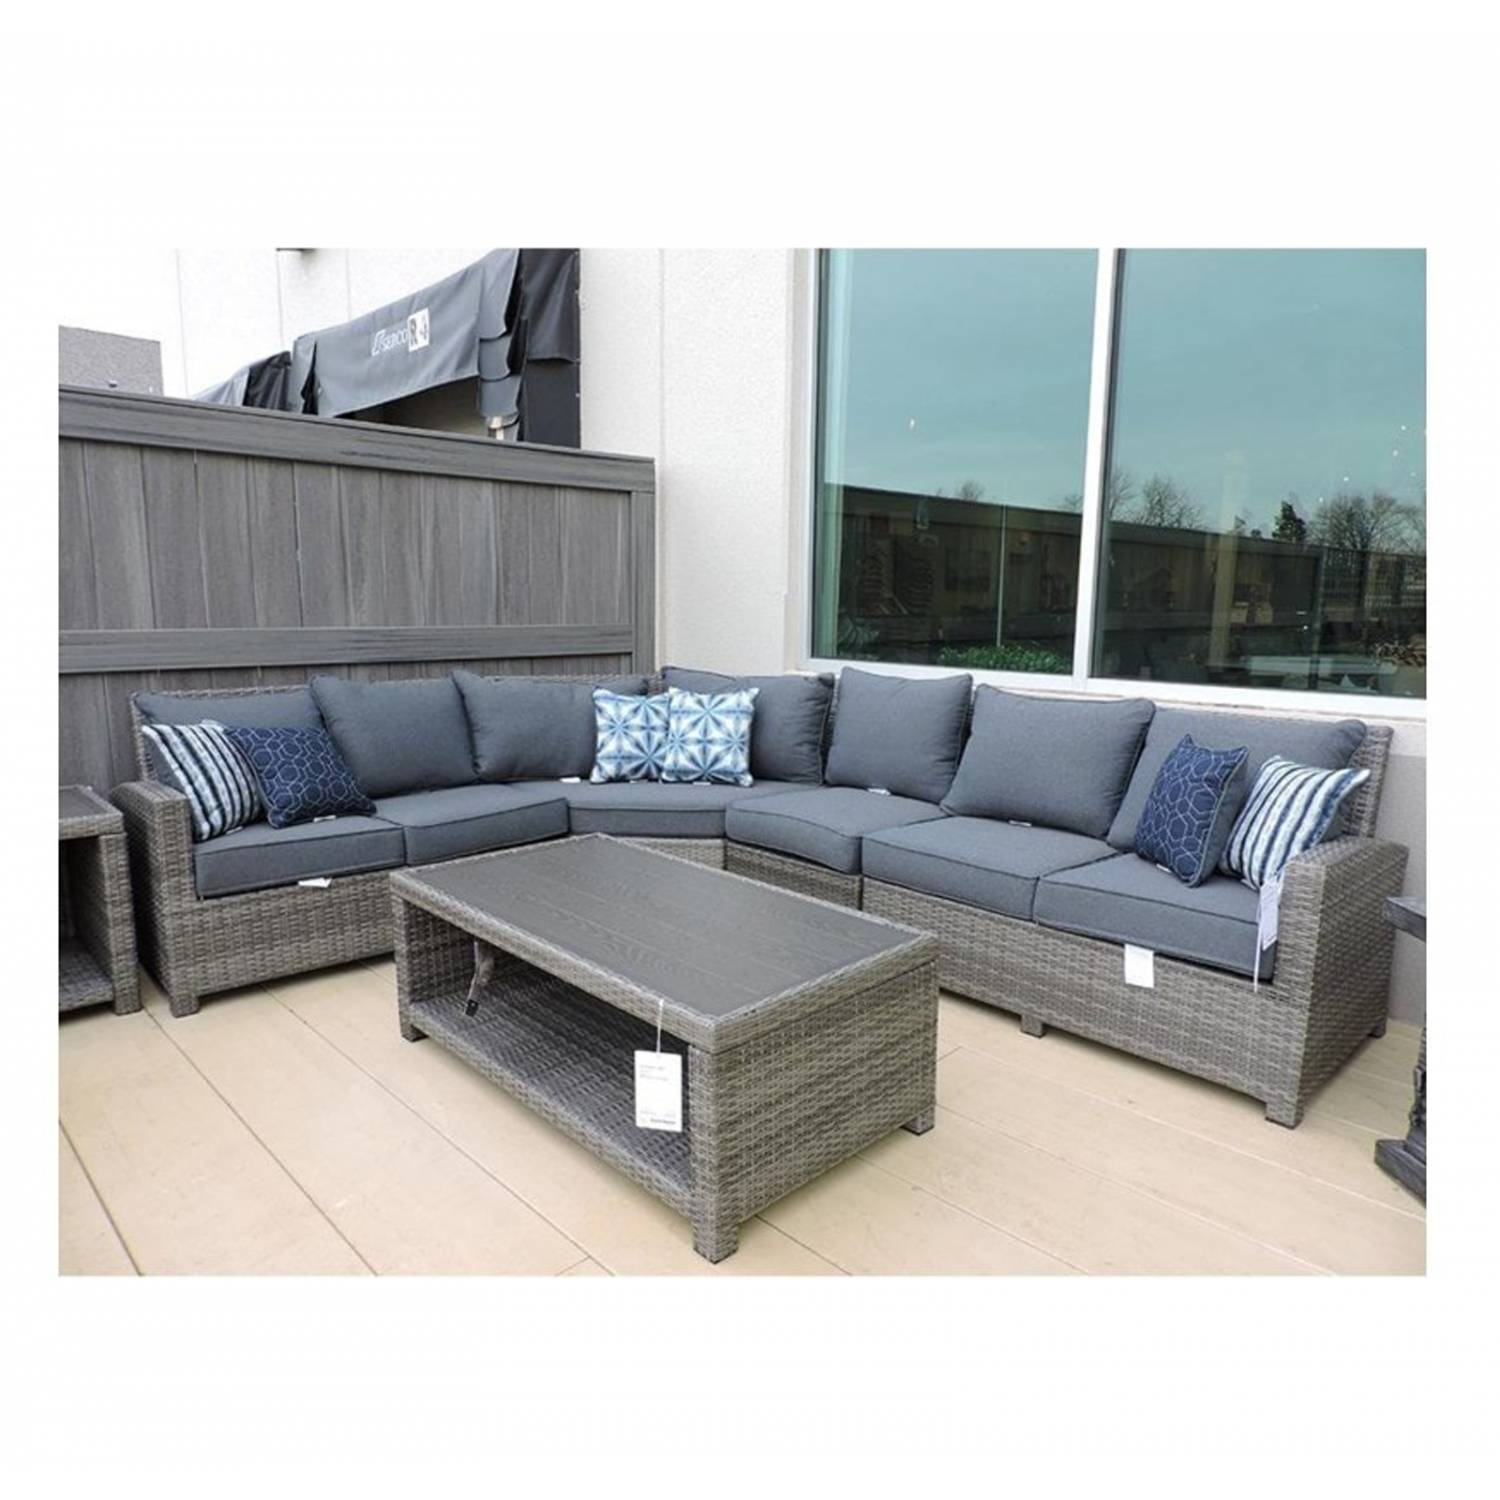 ashley furniture salem beach outdoor patio furniture collection